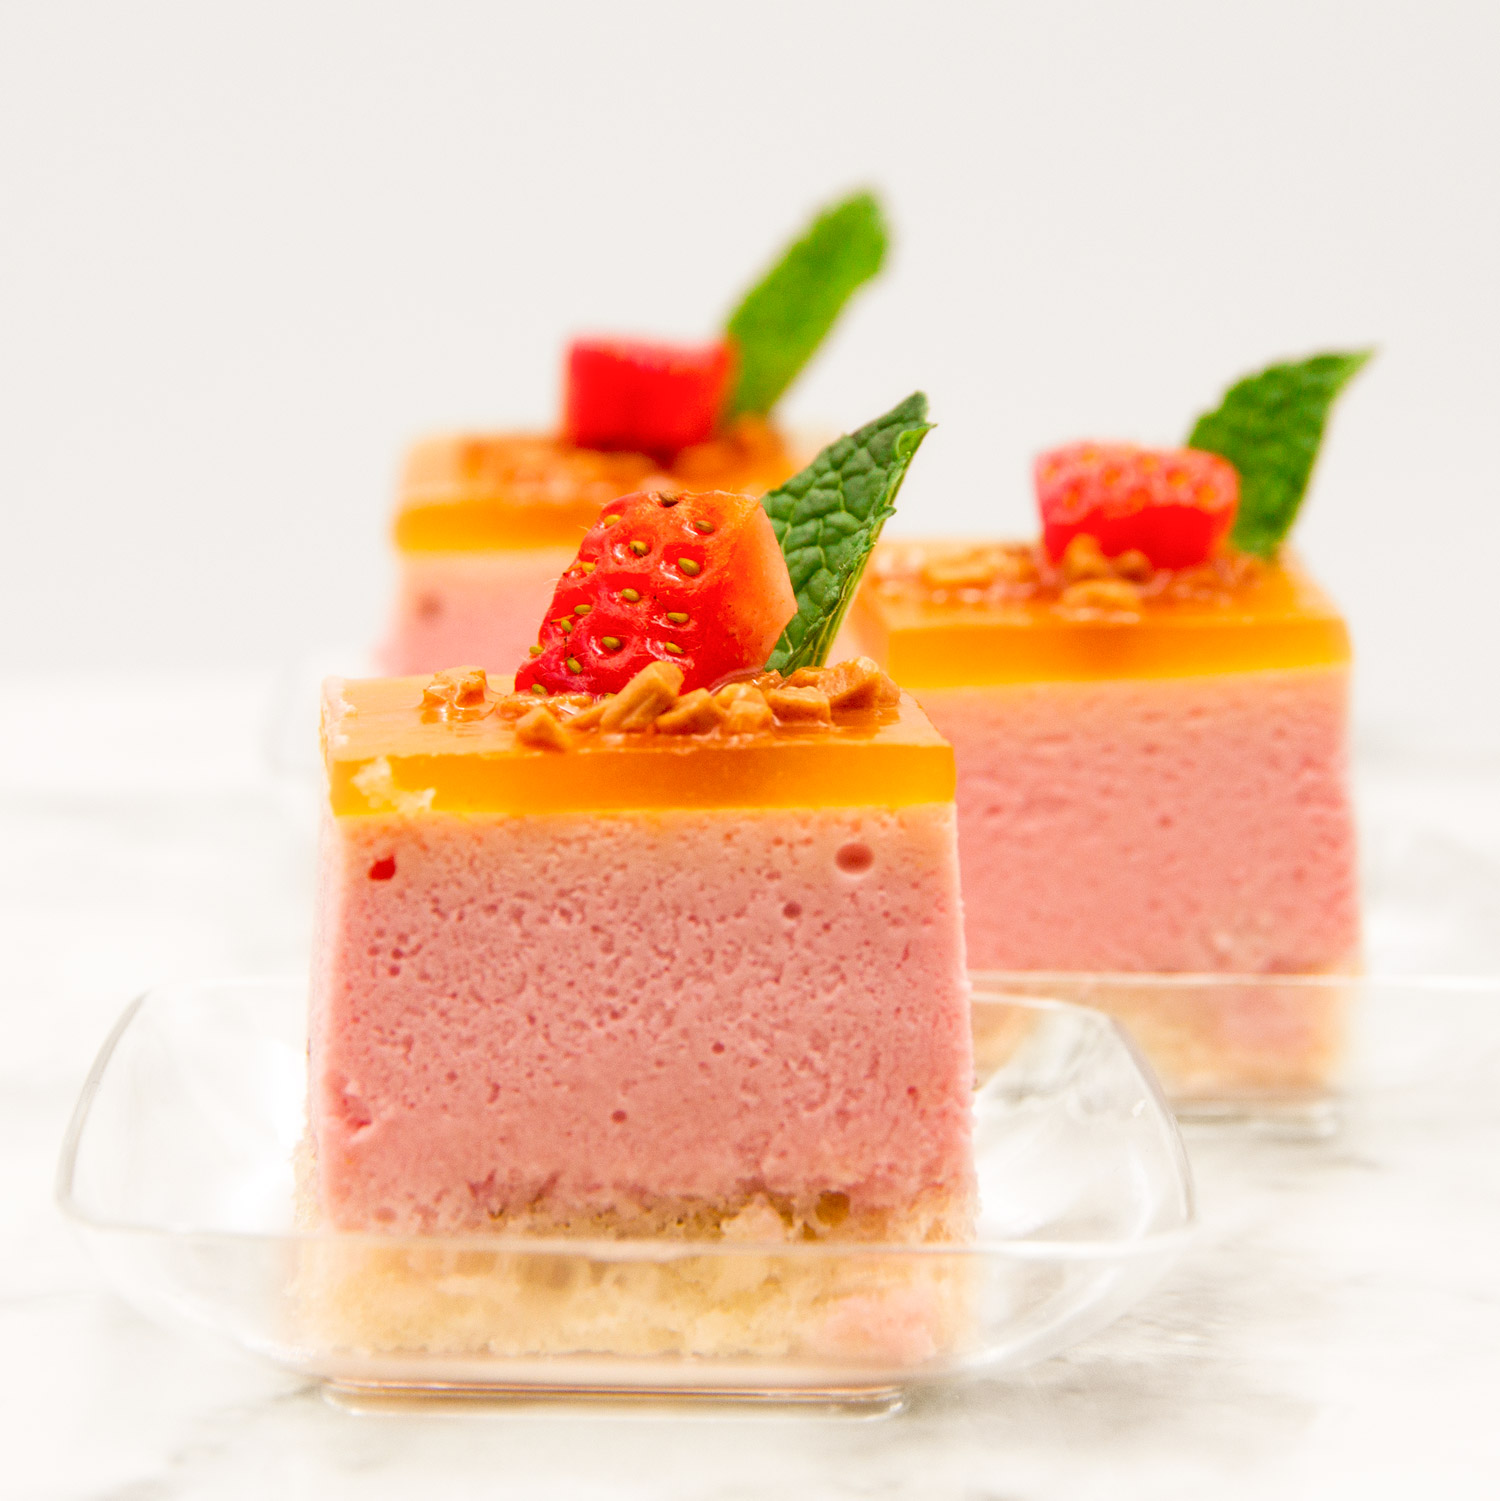 Blood Orange and Strawberry Mousse Cake